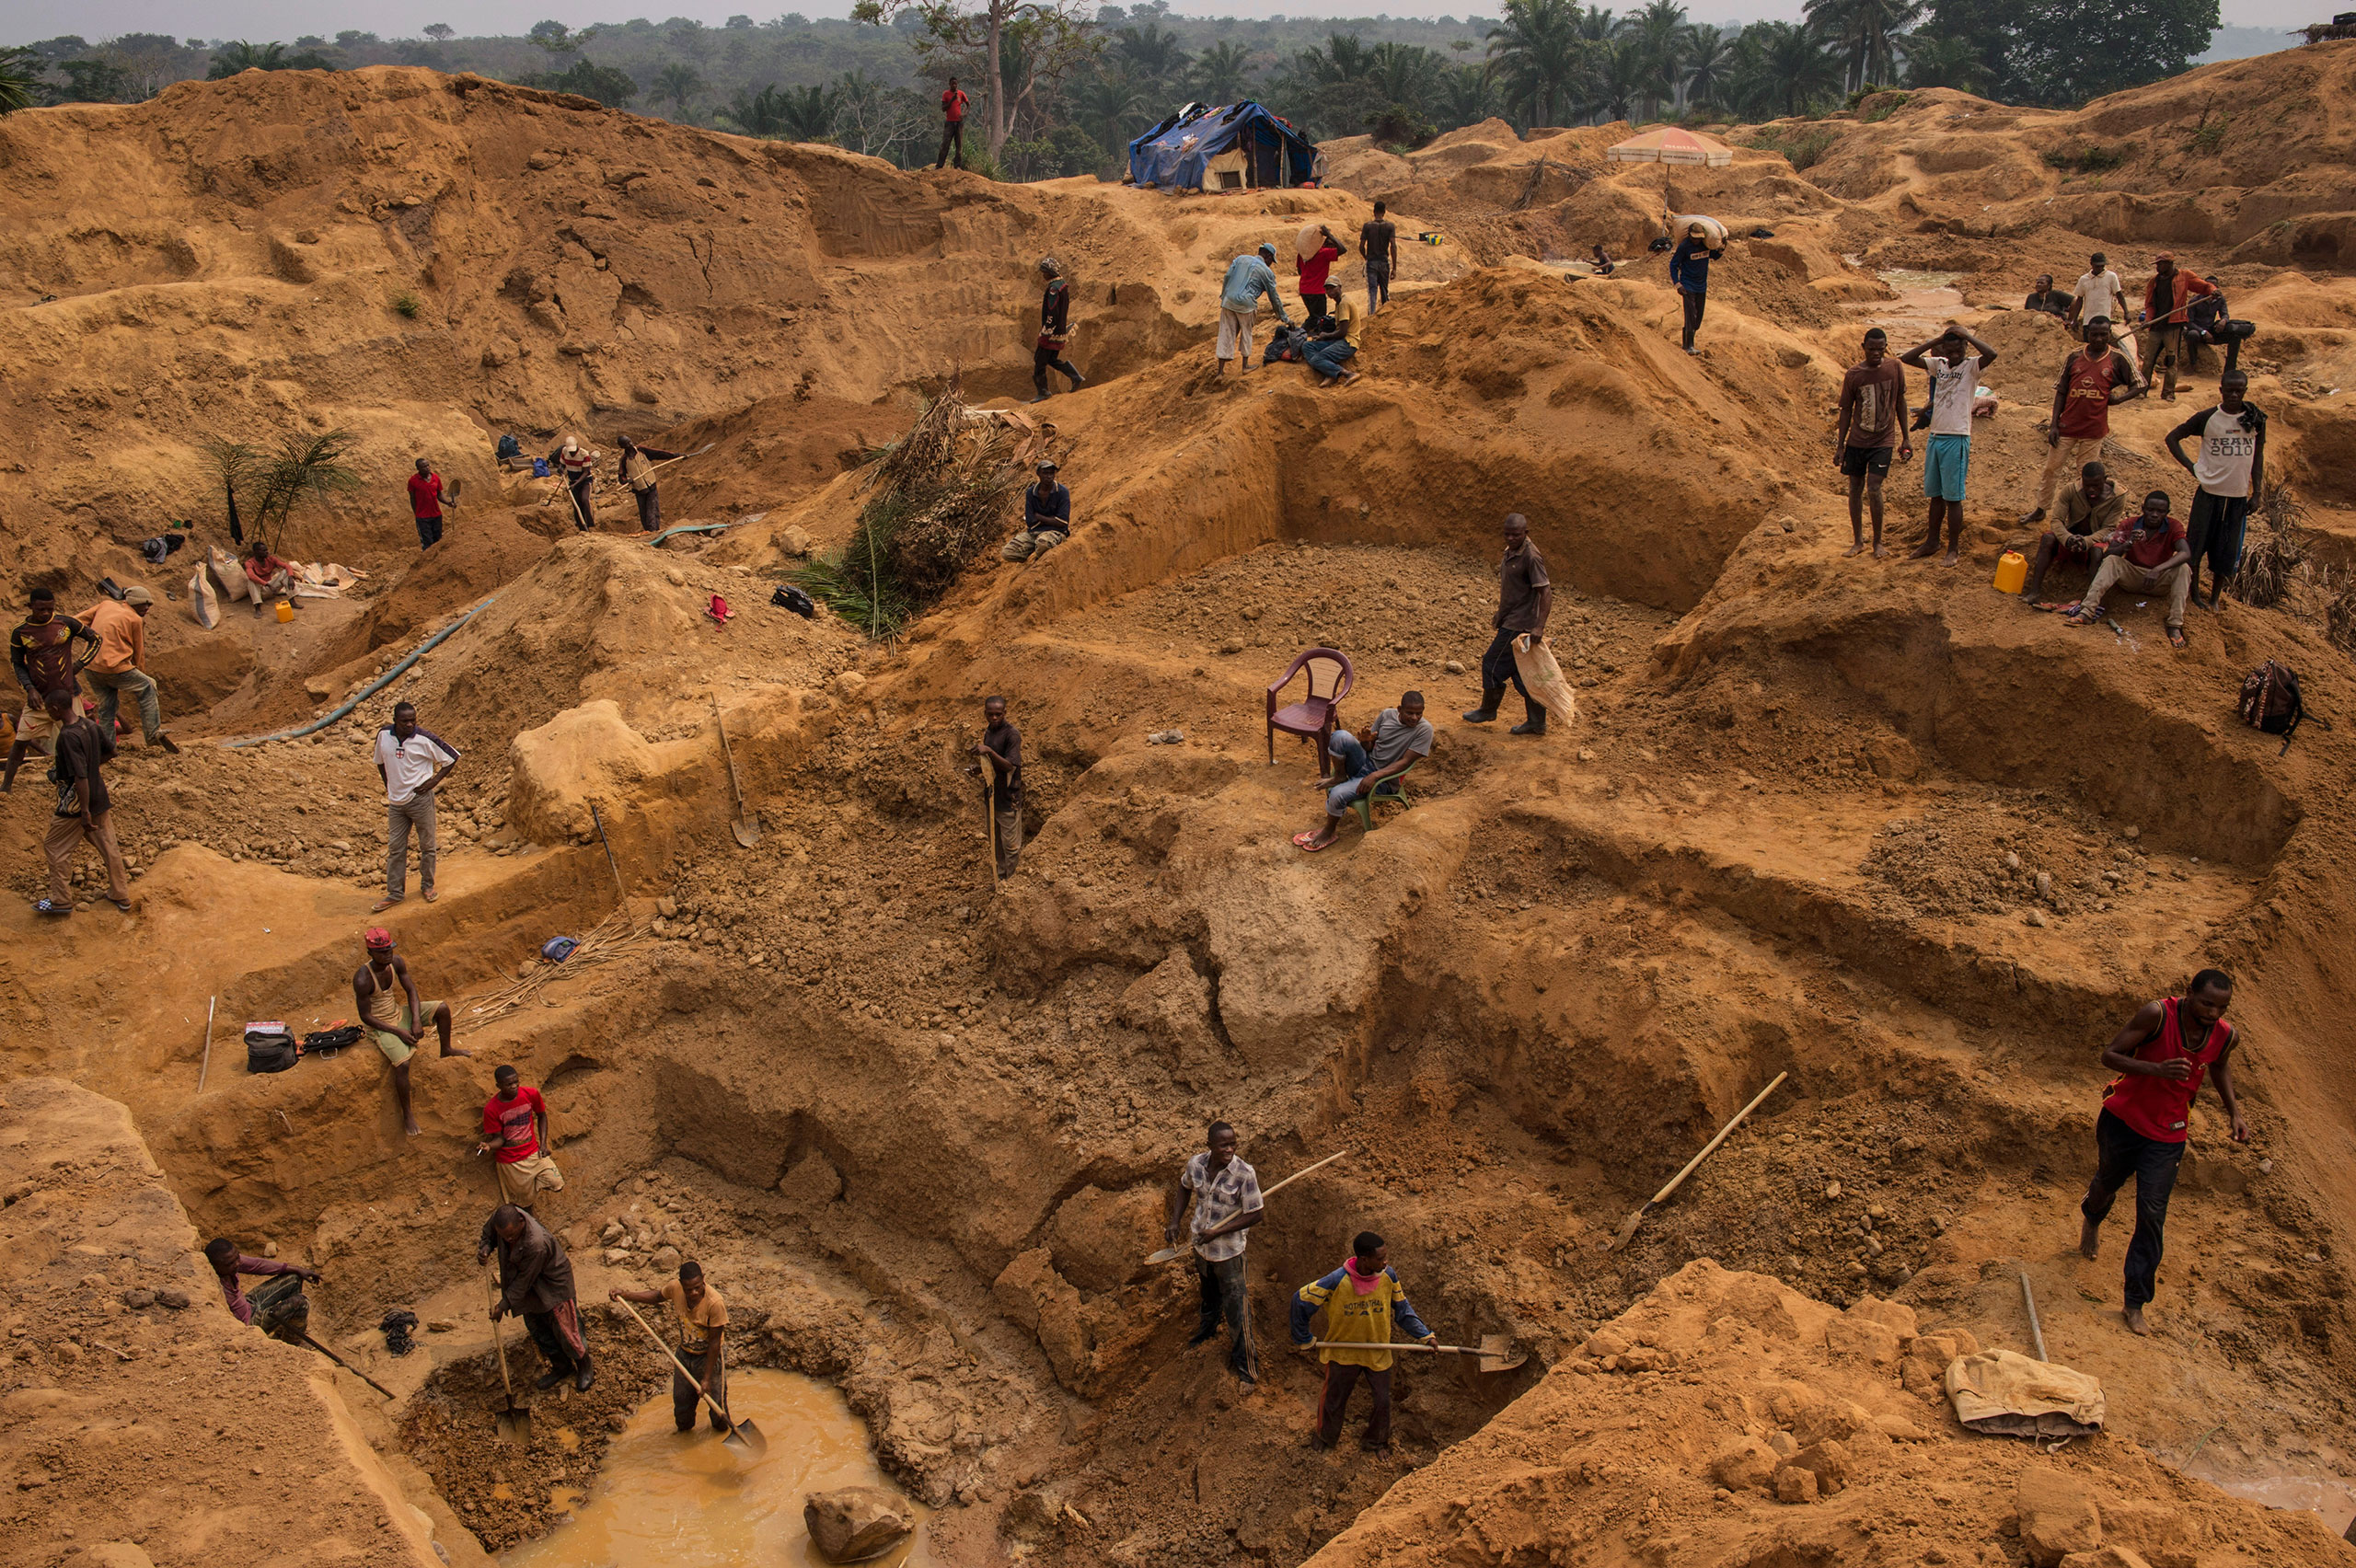 Congolese workers search for rough diamonds Kangambala mine in Lunged, in the south west region of Kasai in the Democratic Republic of Congo, the heart of the diamond mining area in the DRC, August 9, 2015.From  Inside the Democratic Republic of Congo's Diamond Mines